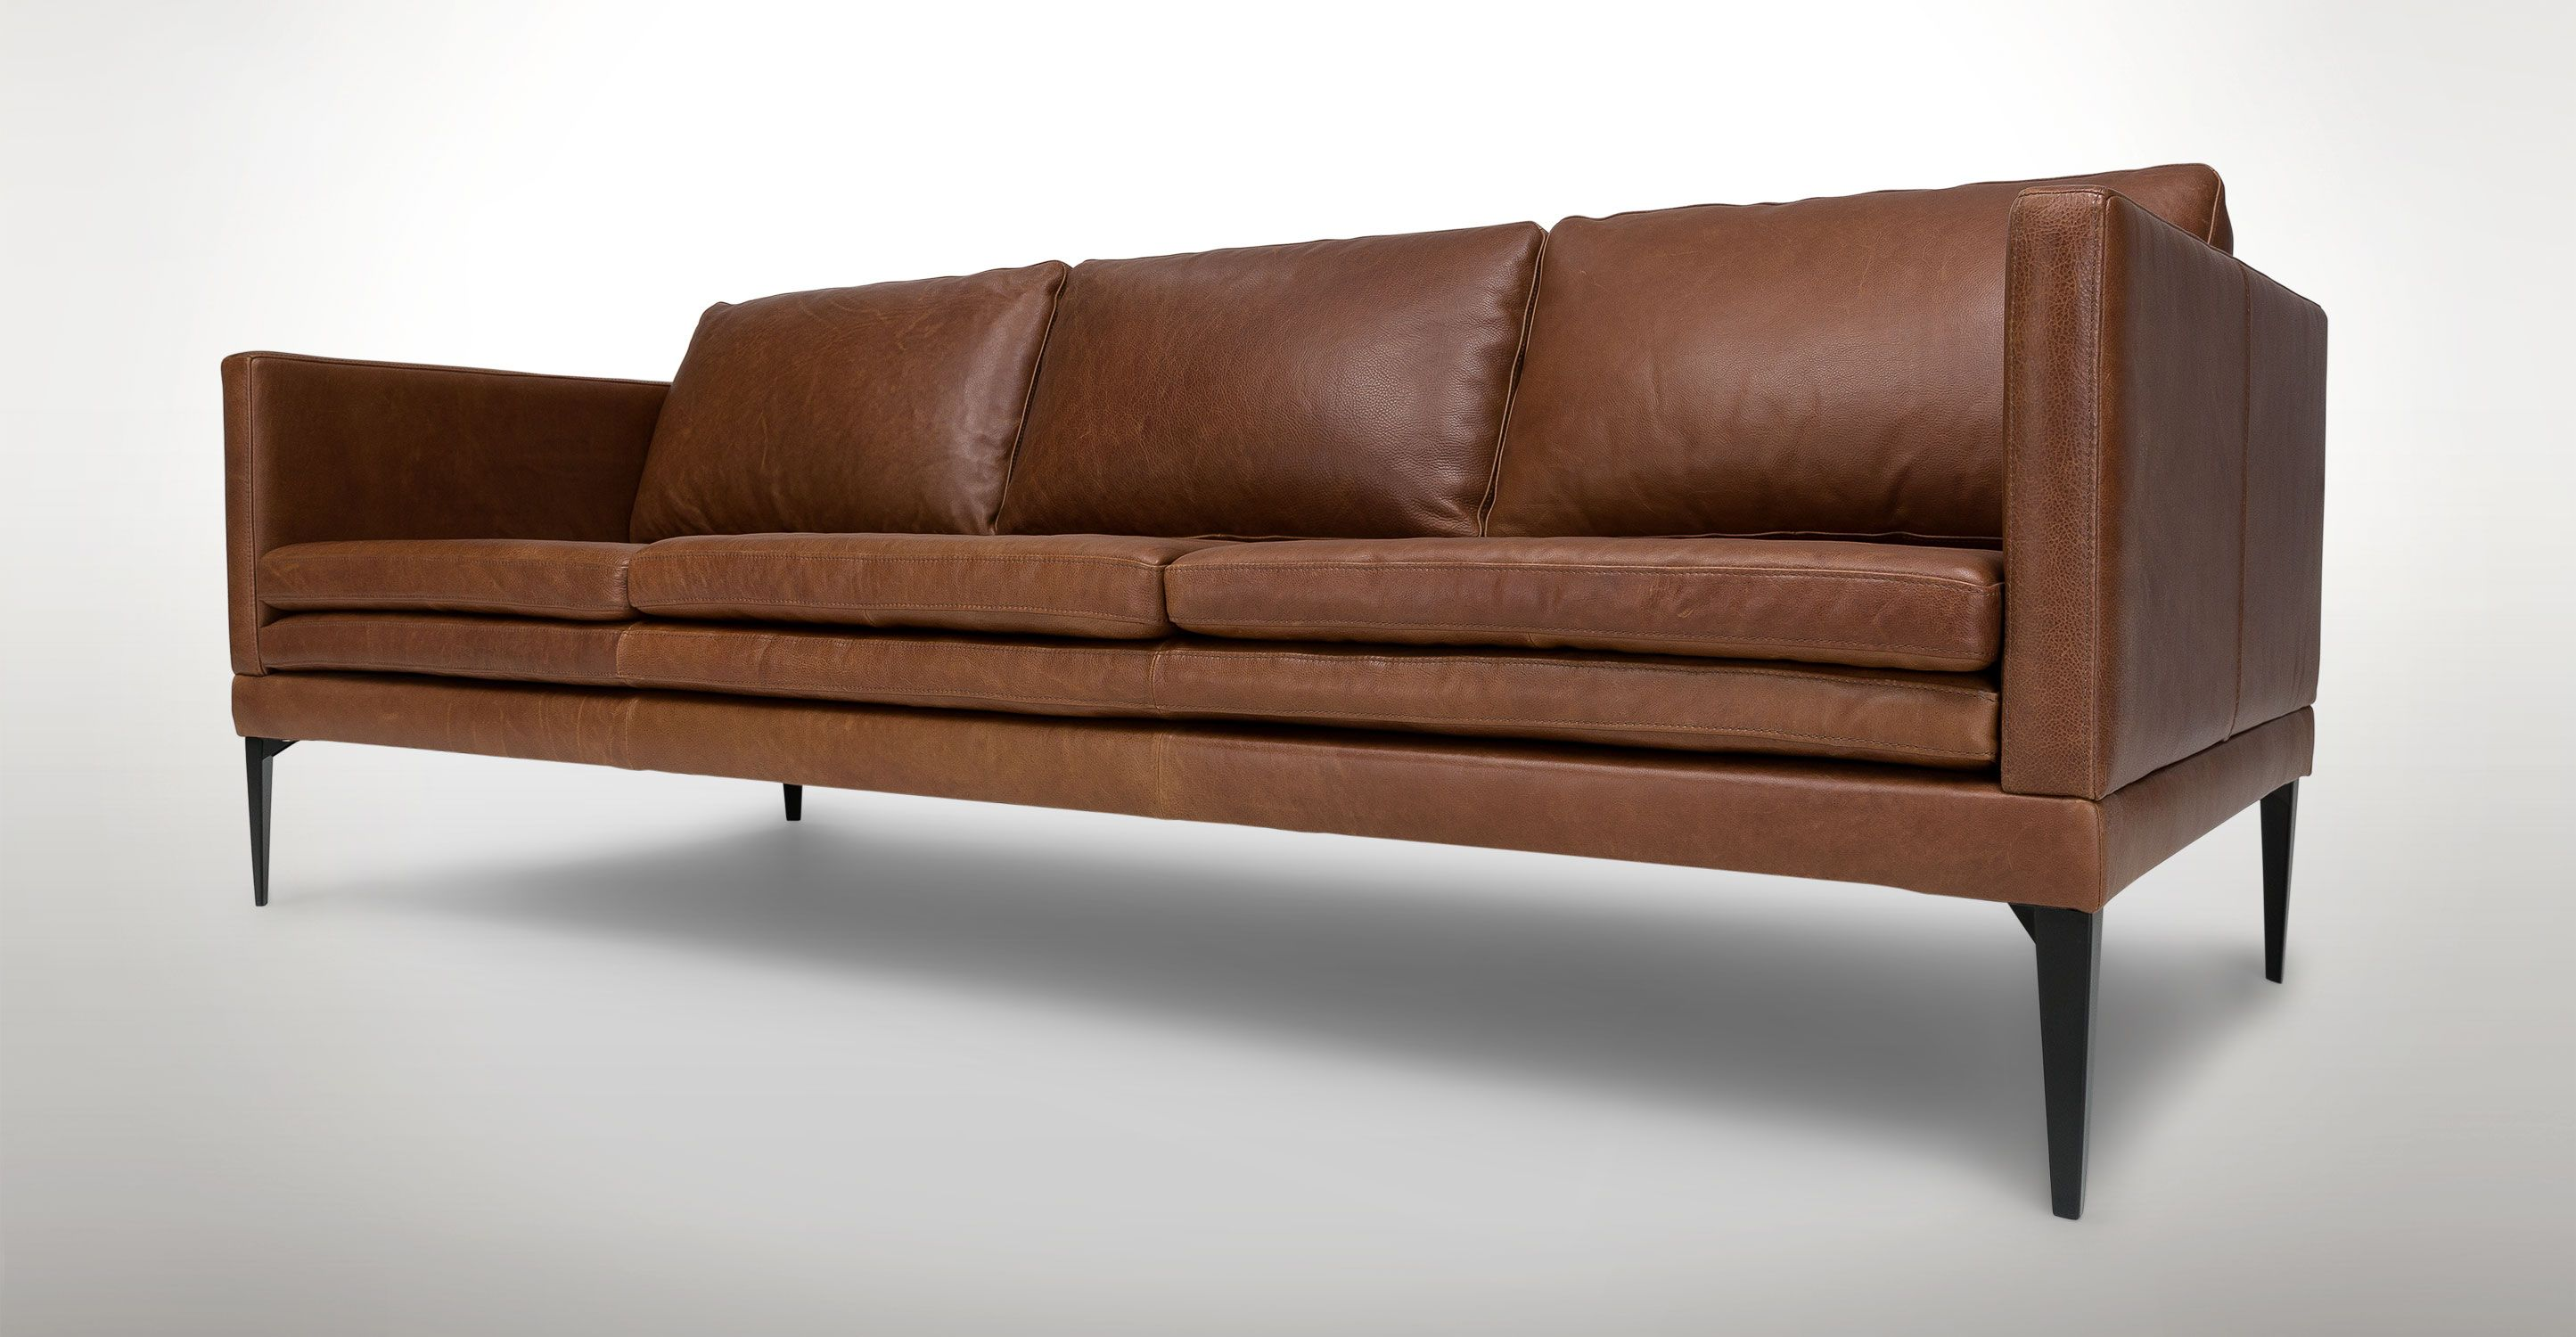 Triplo Taos Canyon Brown Sofa Sofas Article